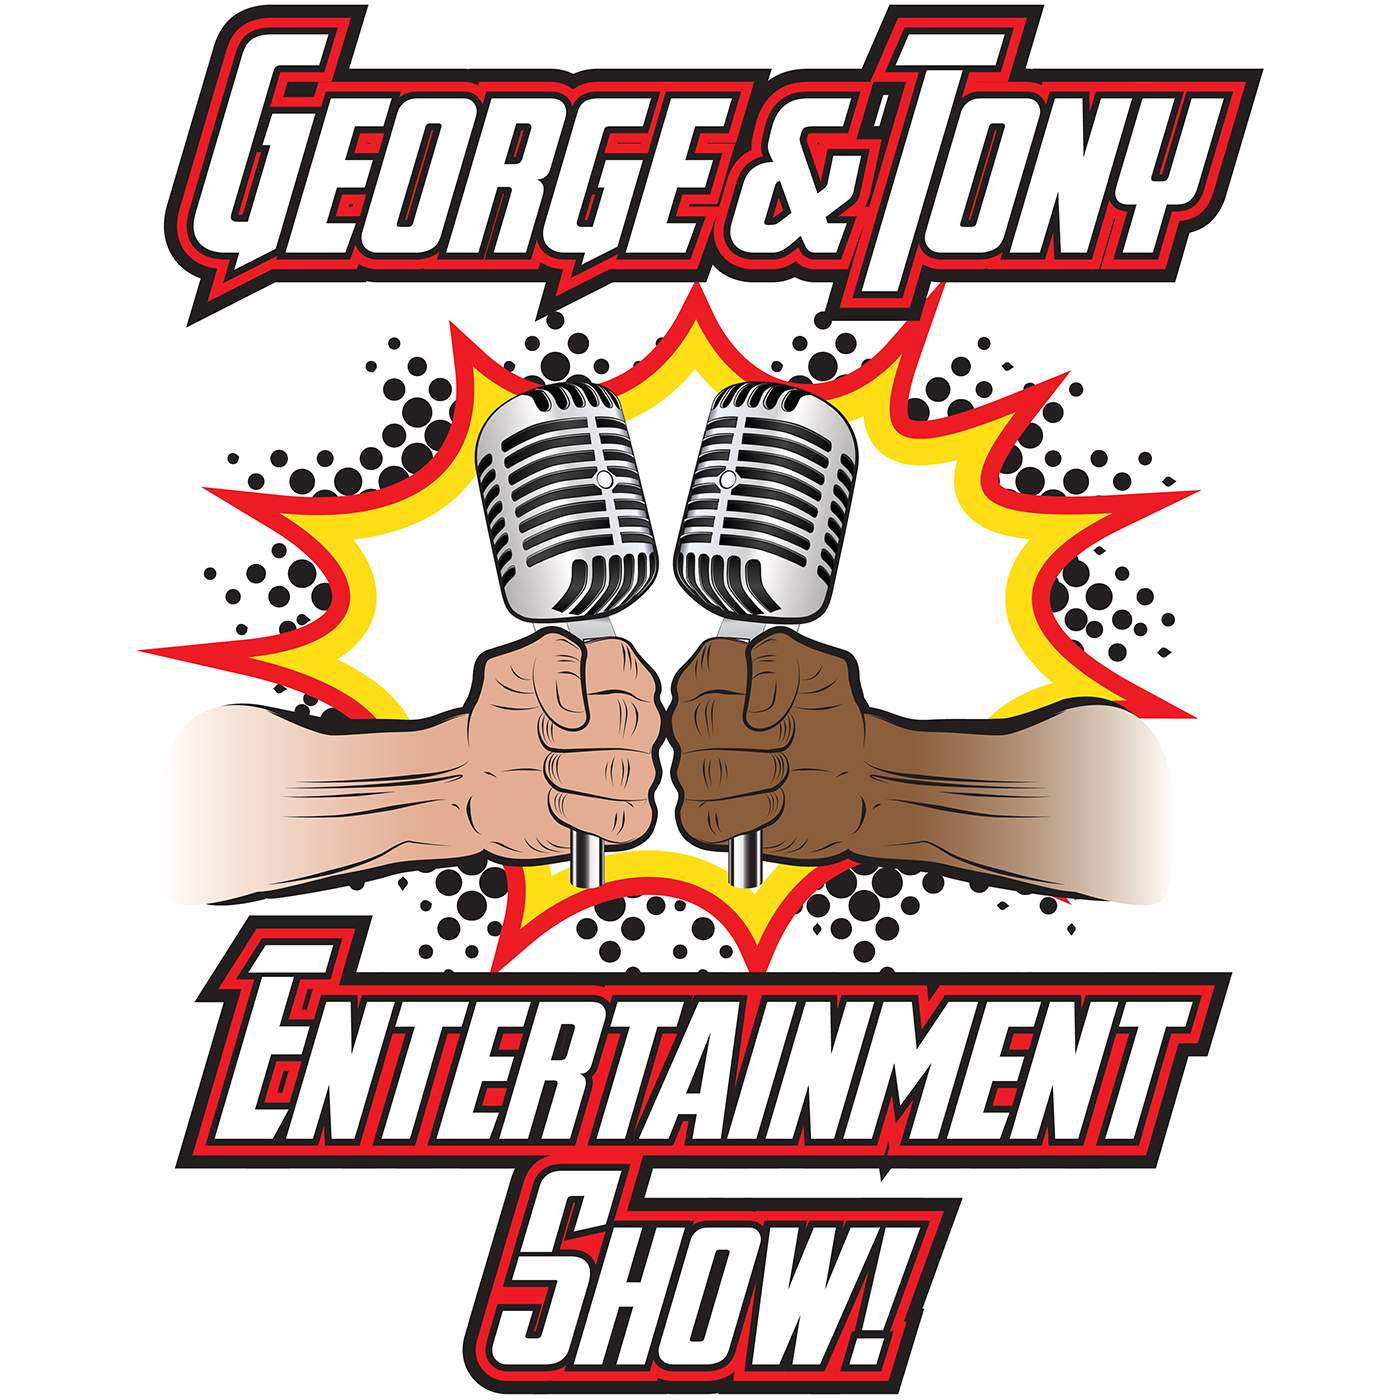 George and Tony Entertainment Show #6